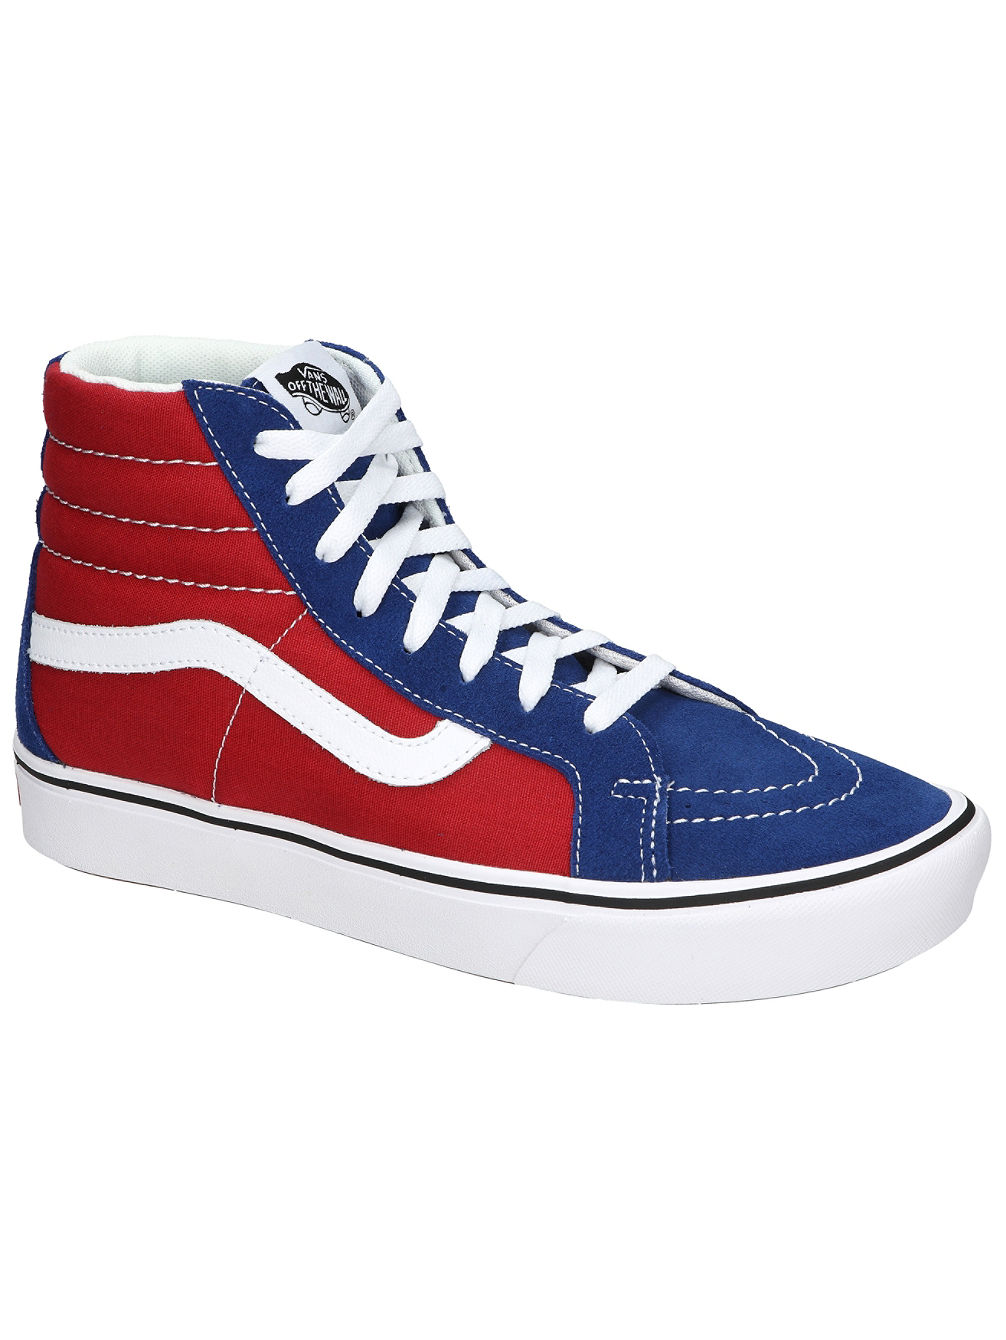 Comfycush Sk8-Hi Reissue TwoTone Sneakers